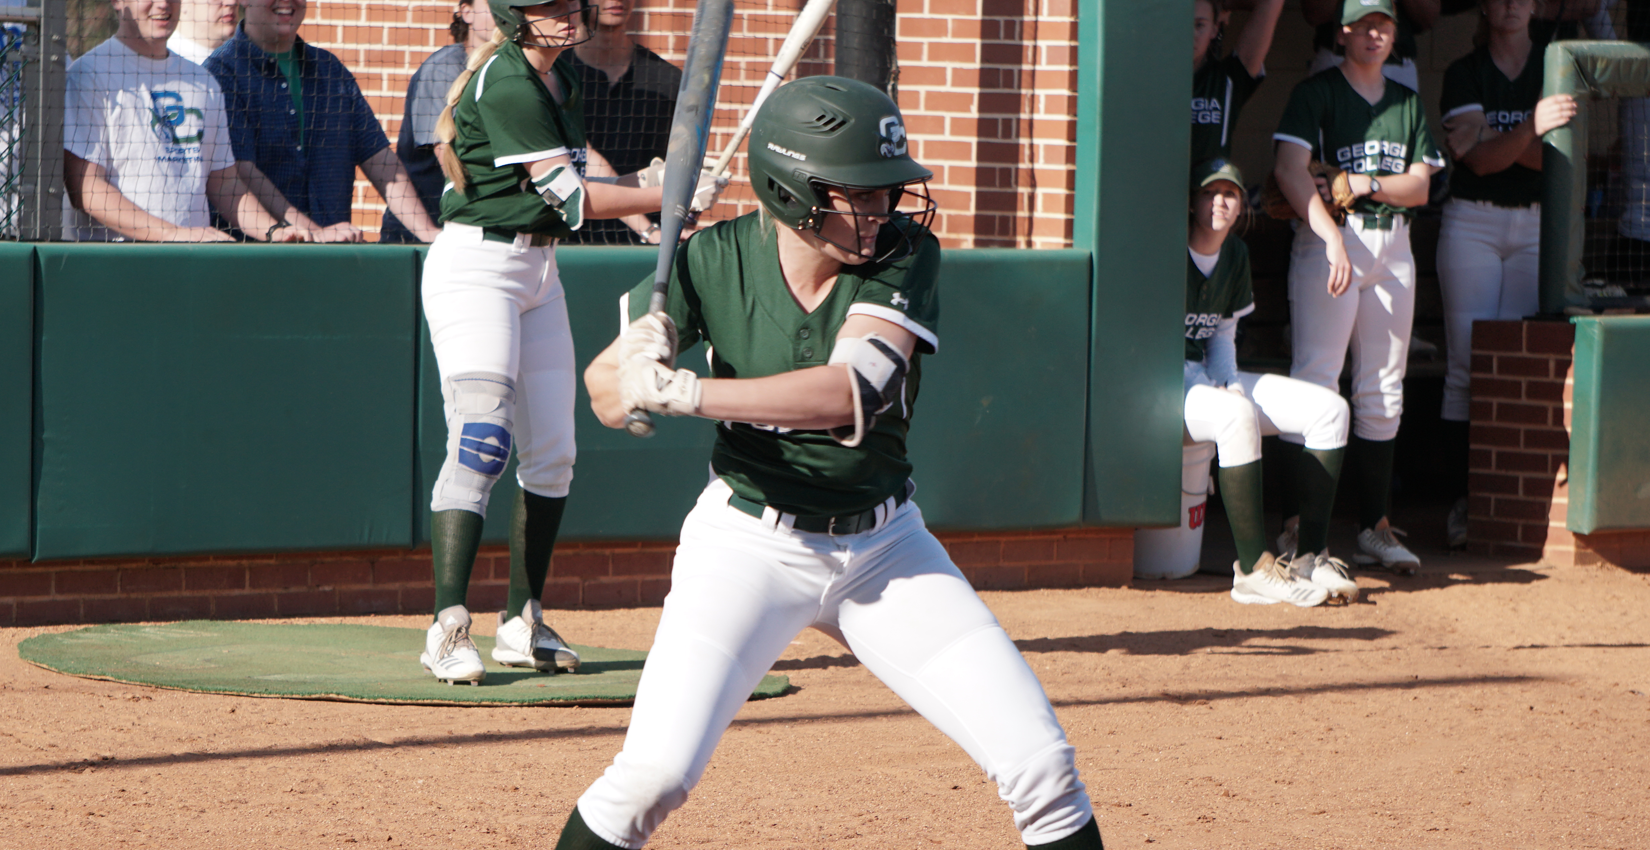 GC Softball Sweeps FMU Doubleheader, Edenfield Walk-Off Ends Game Two